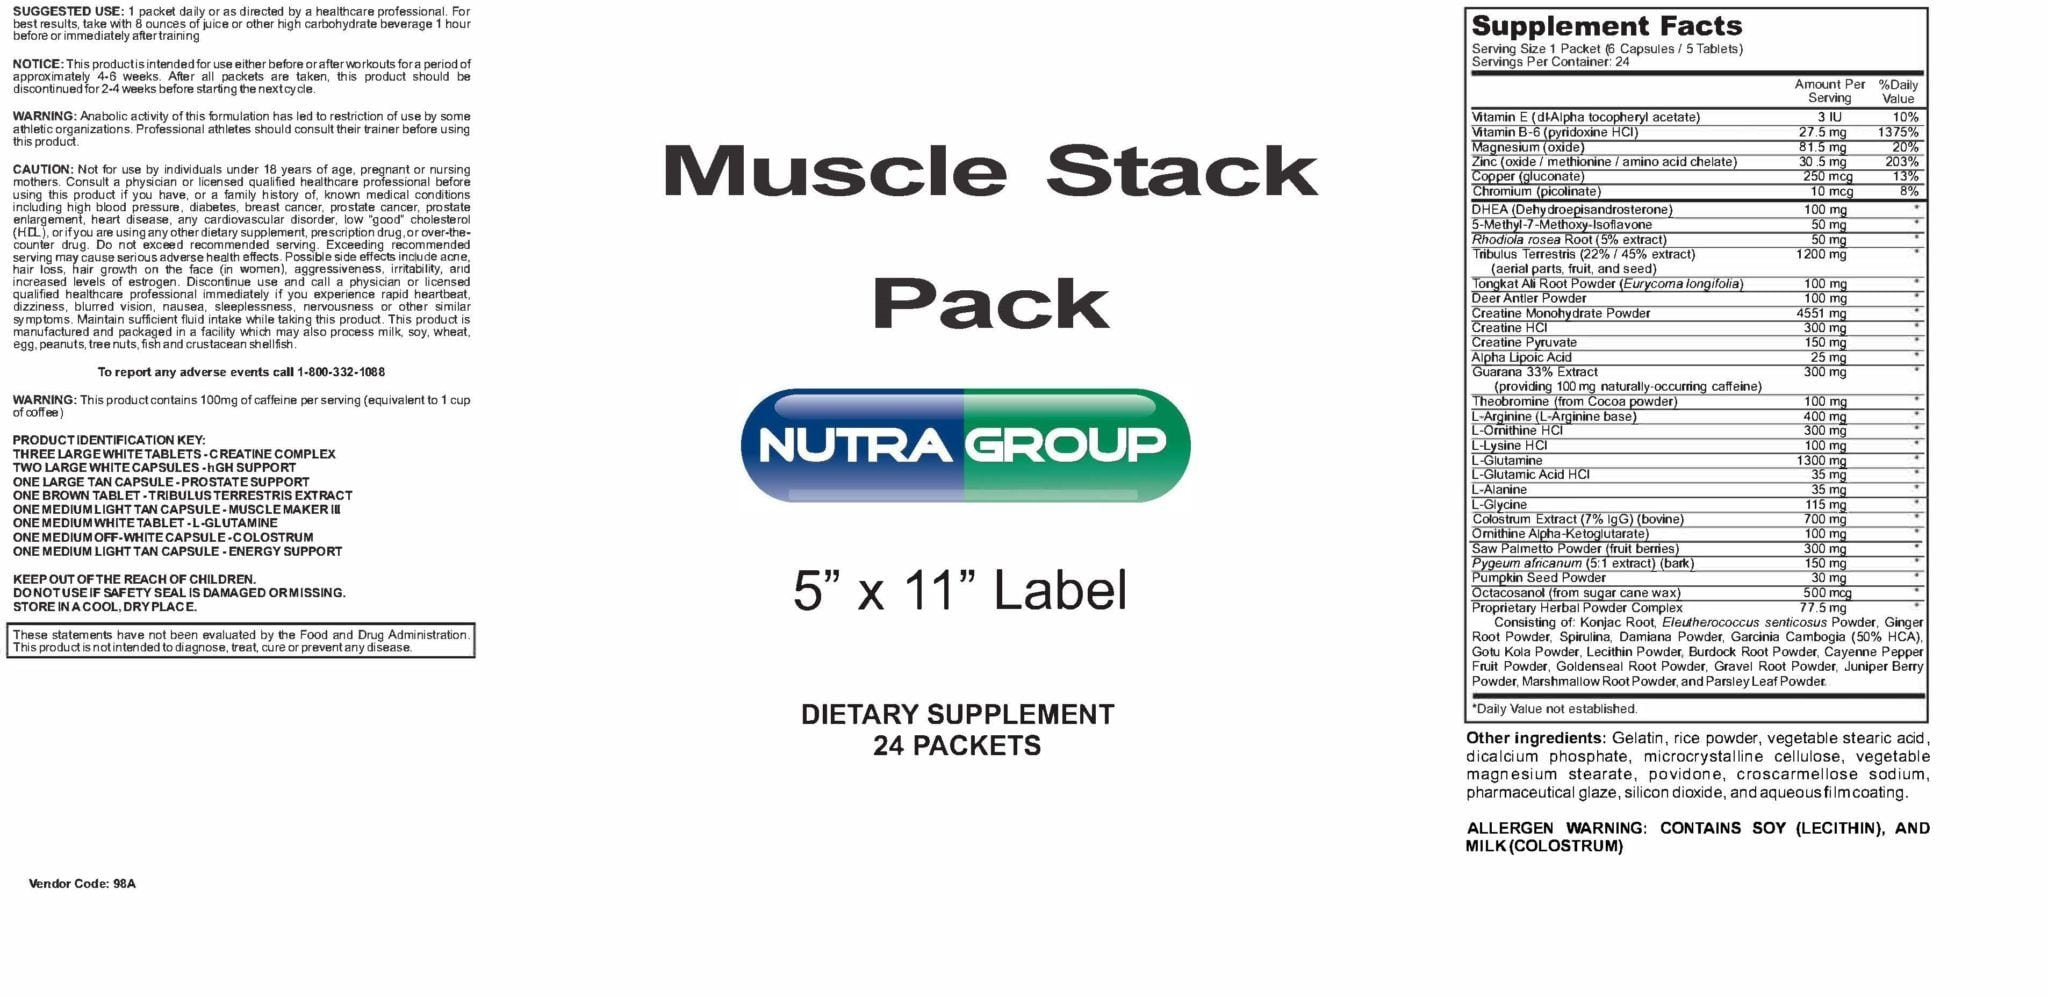 Private Label Muscle Stack Pack Supplement